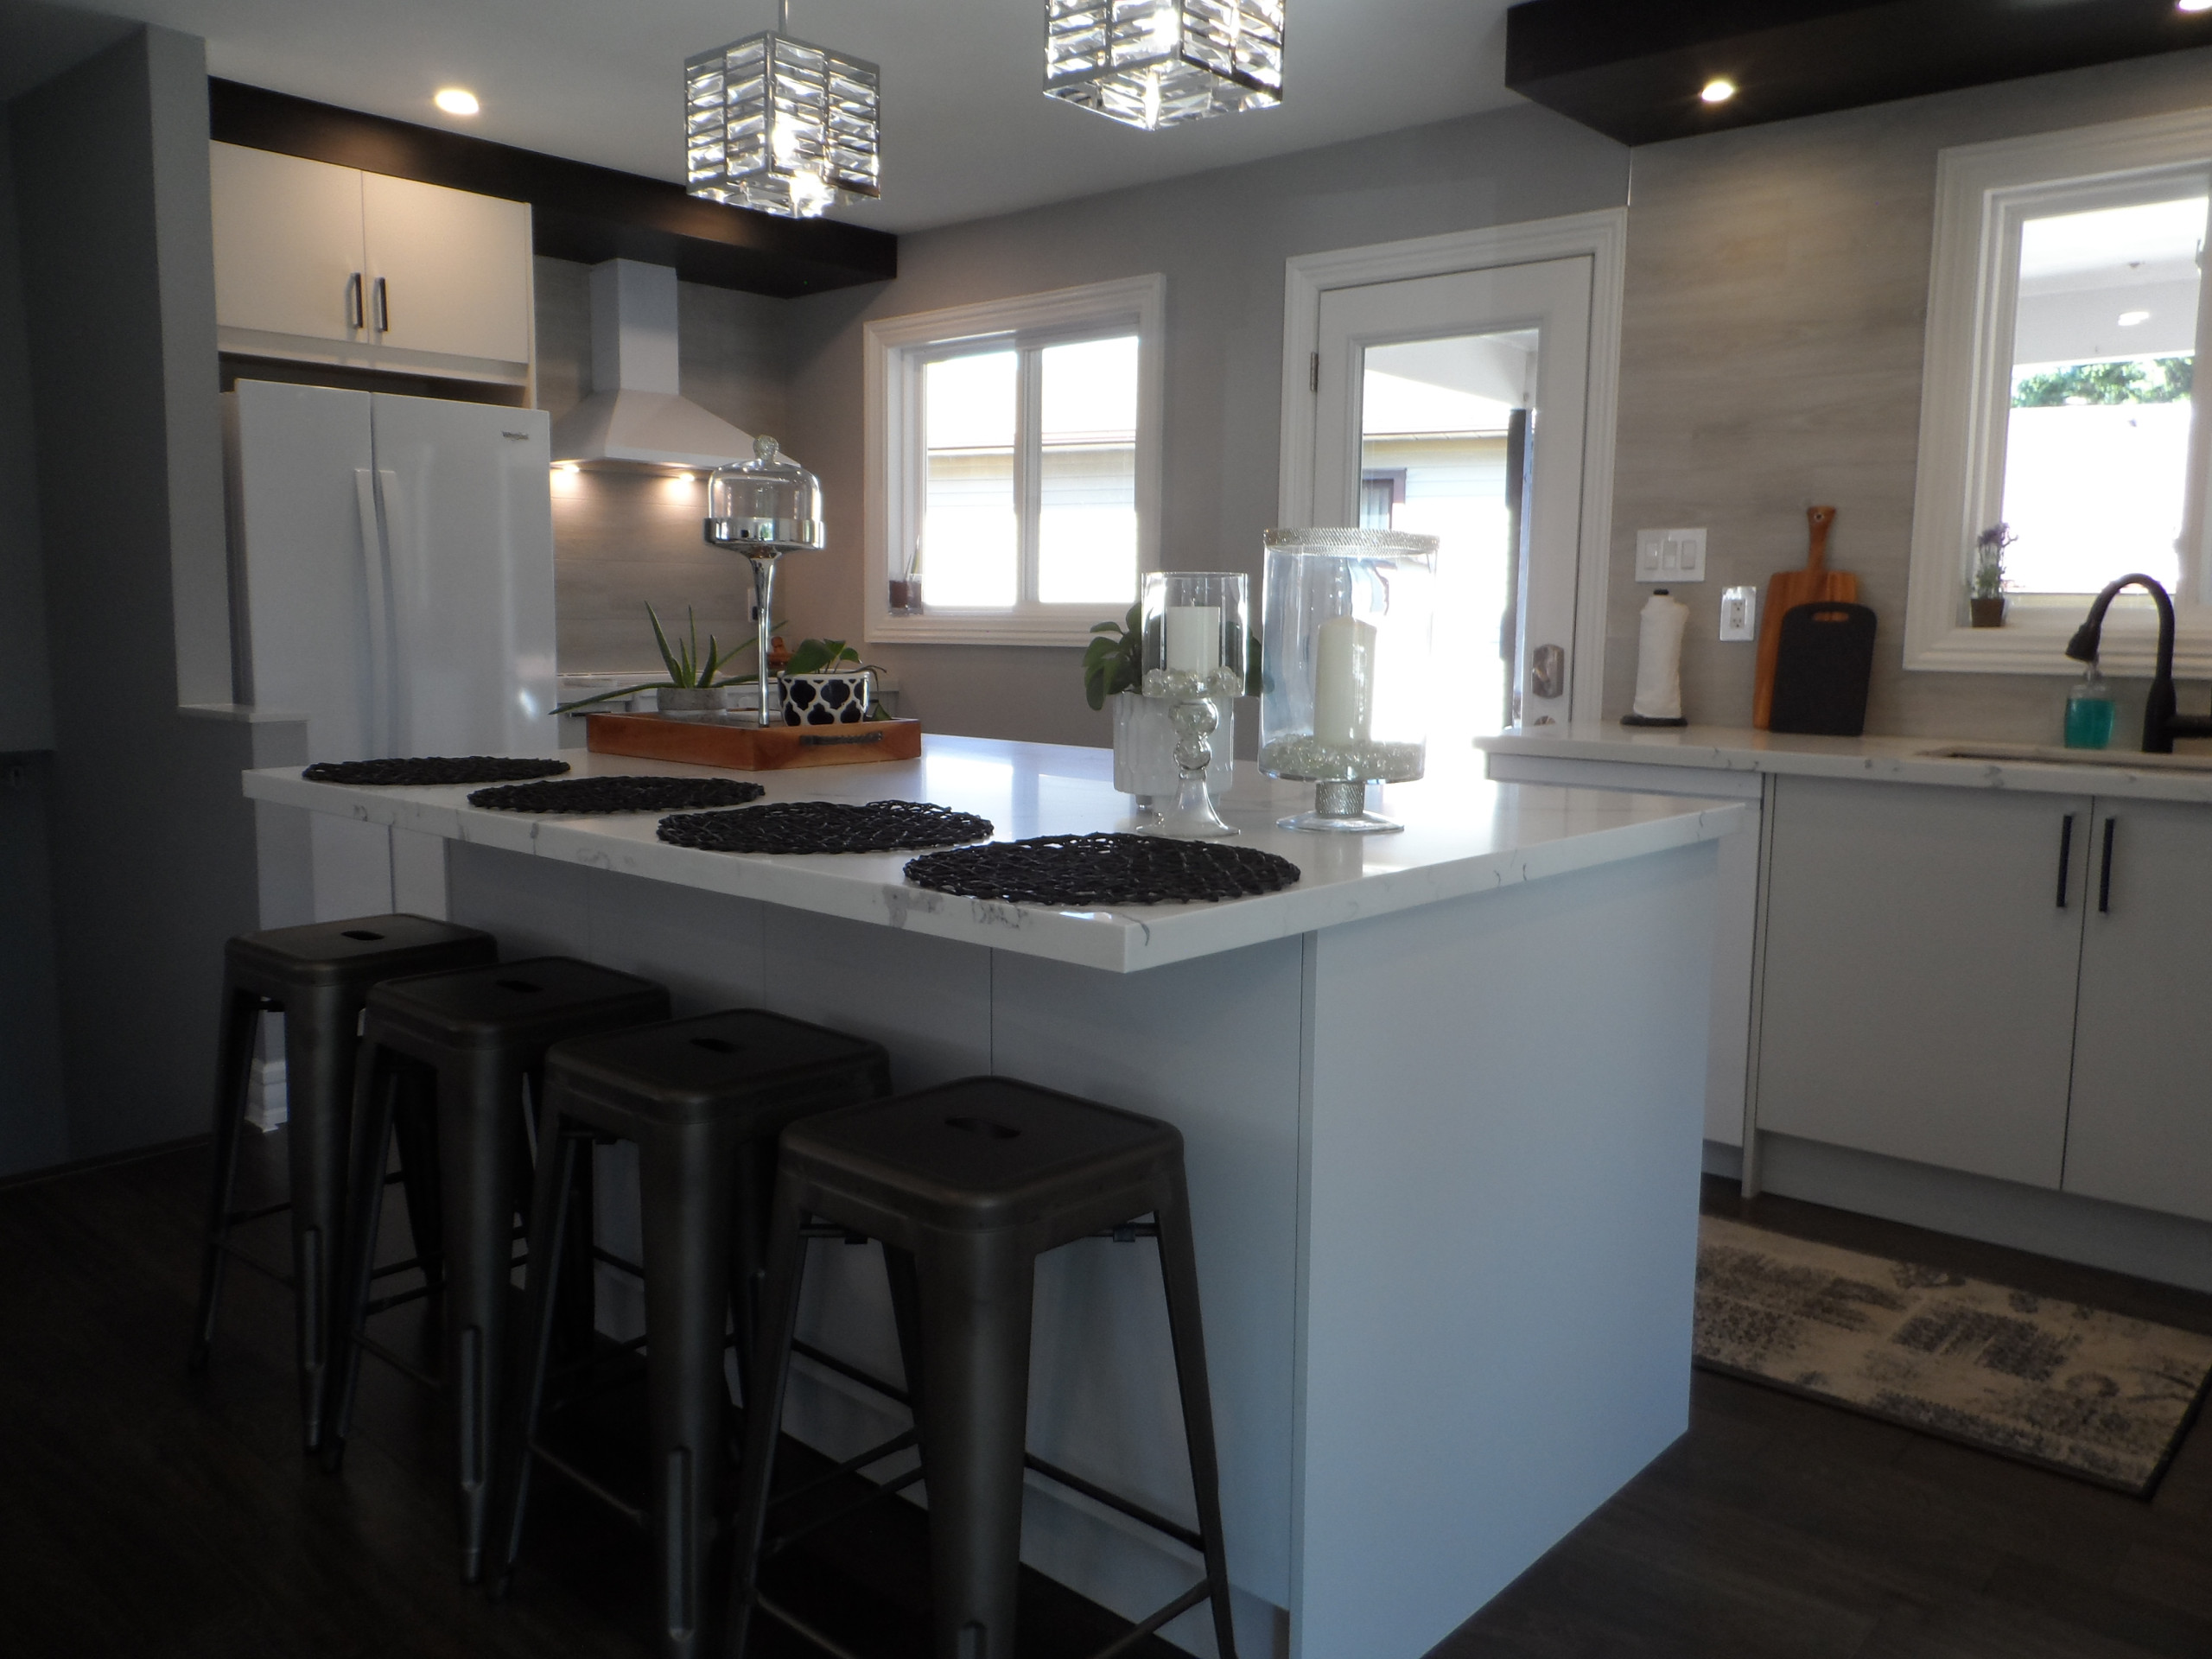 Georgetown Kitchen project with wall removal